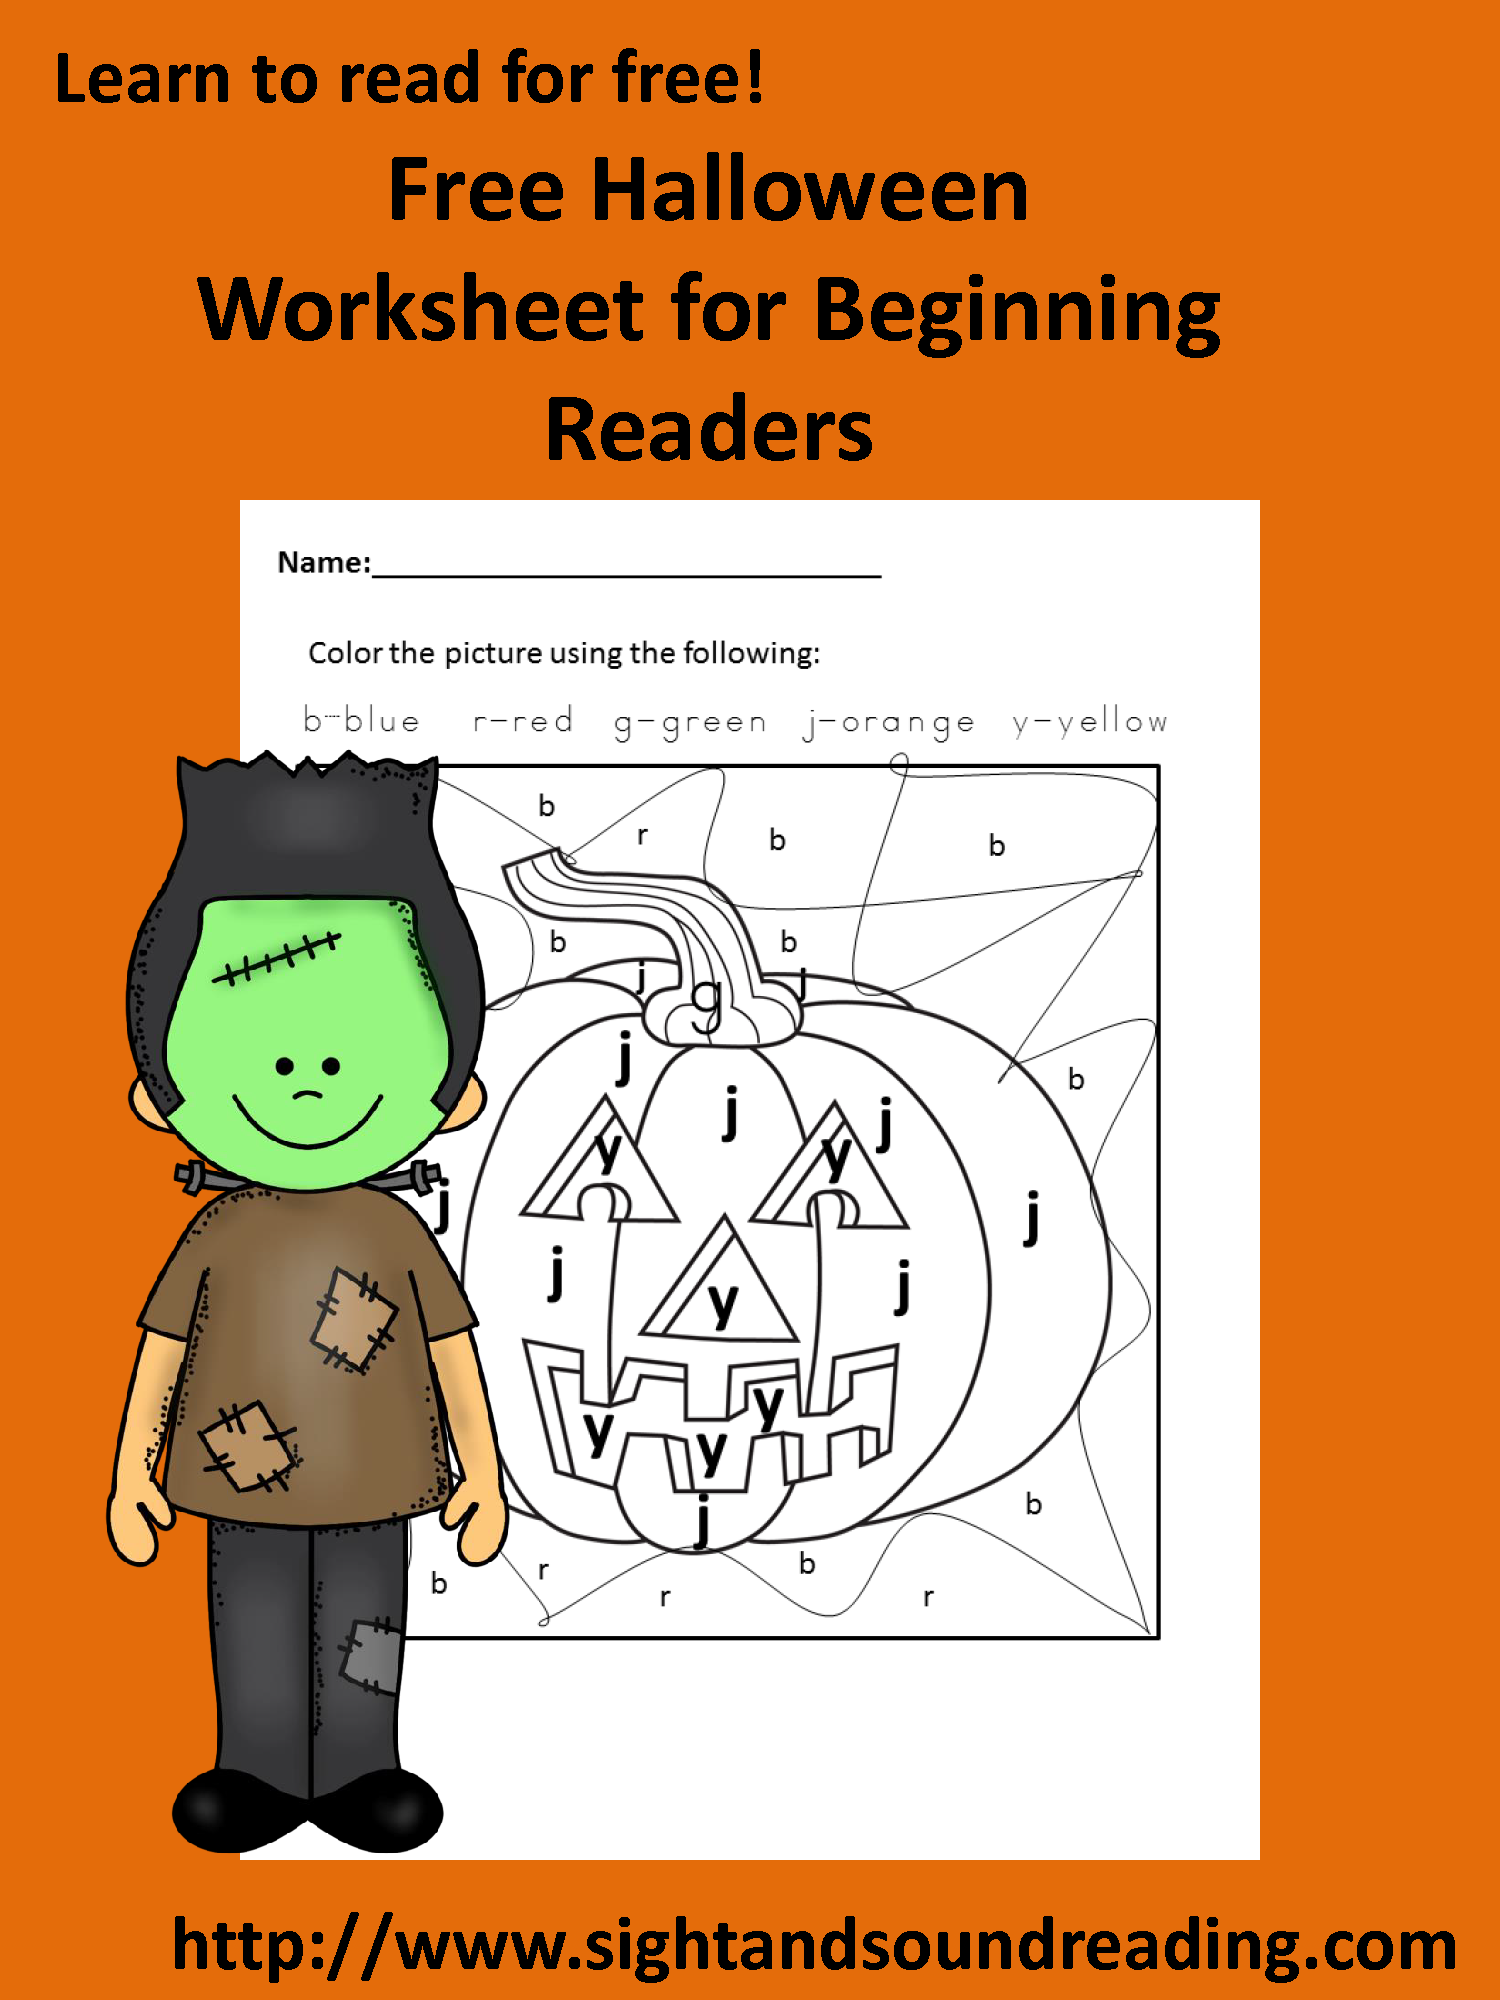 Students Get To Color By Letter A Pumpkinjust In Time For Halloween More Resources Visit Sightandsoundreading